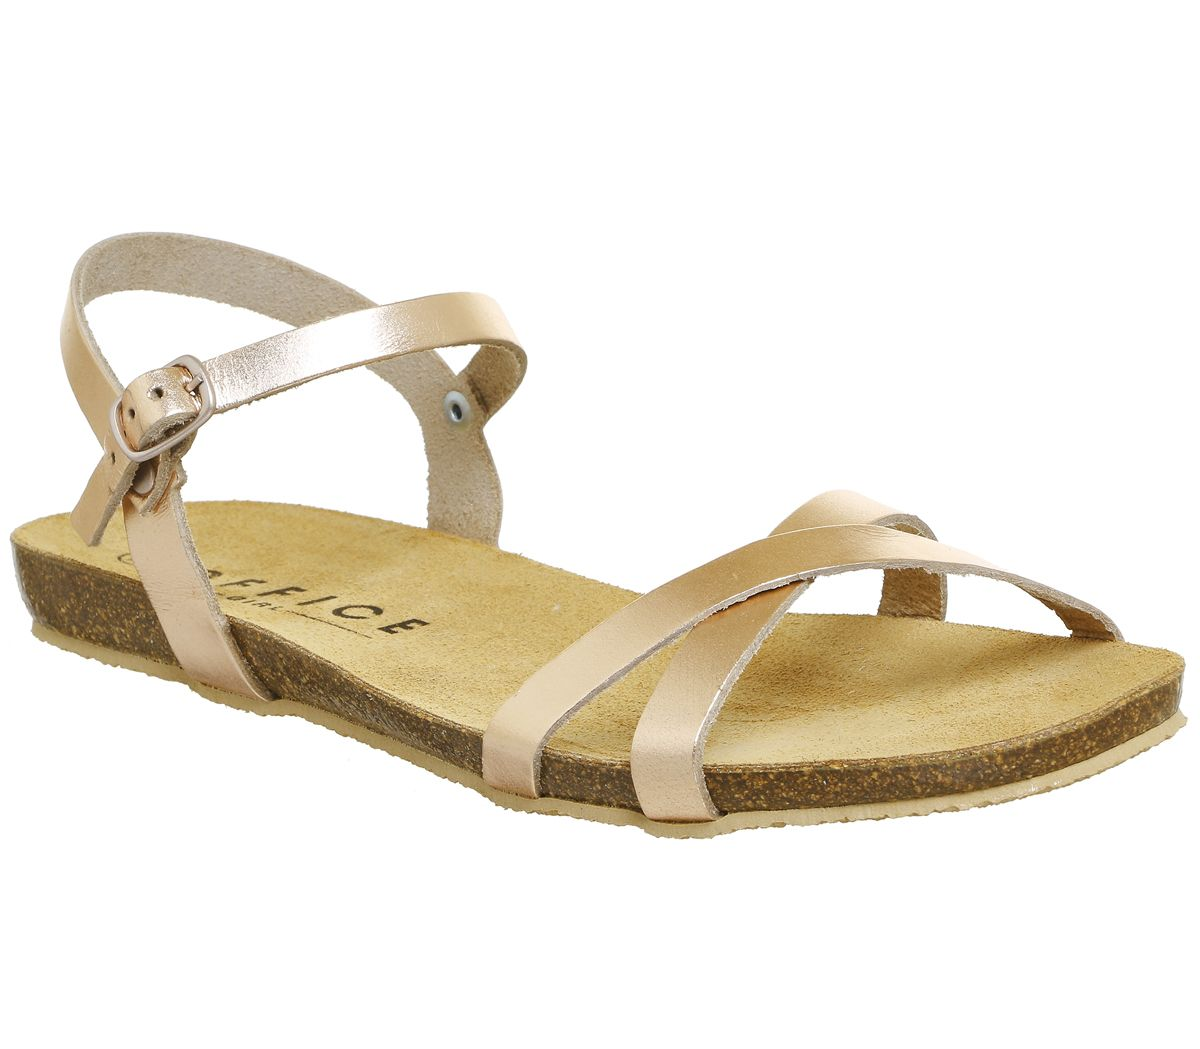 eee07a4ed42a Office Safari Cross Strap Footbed Sandals Rose Gold Leather - Sandals